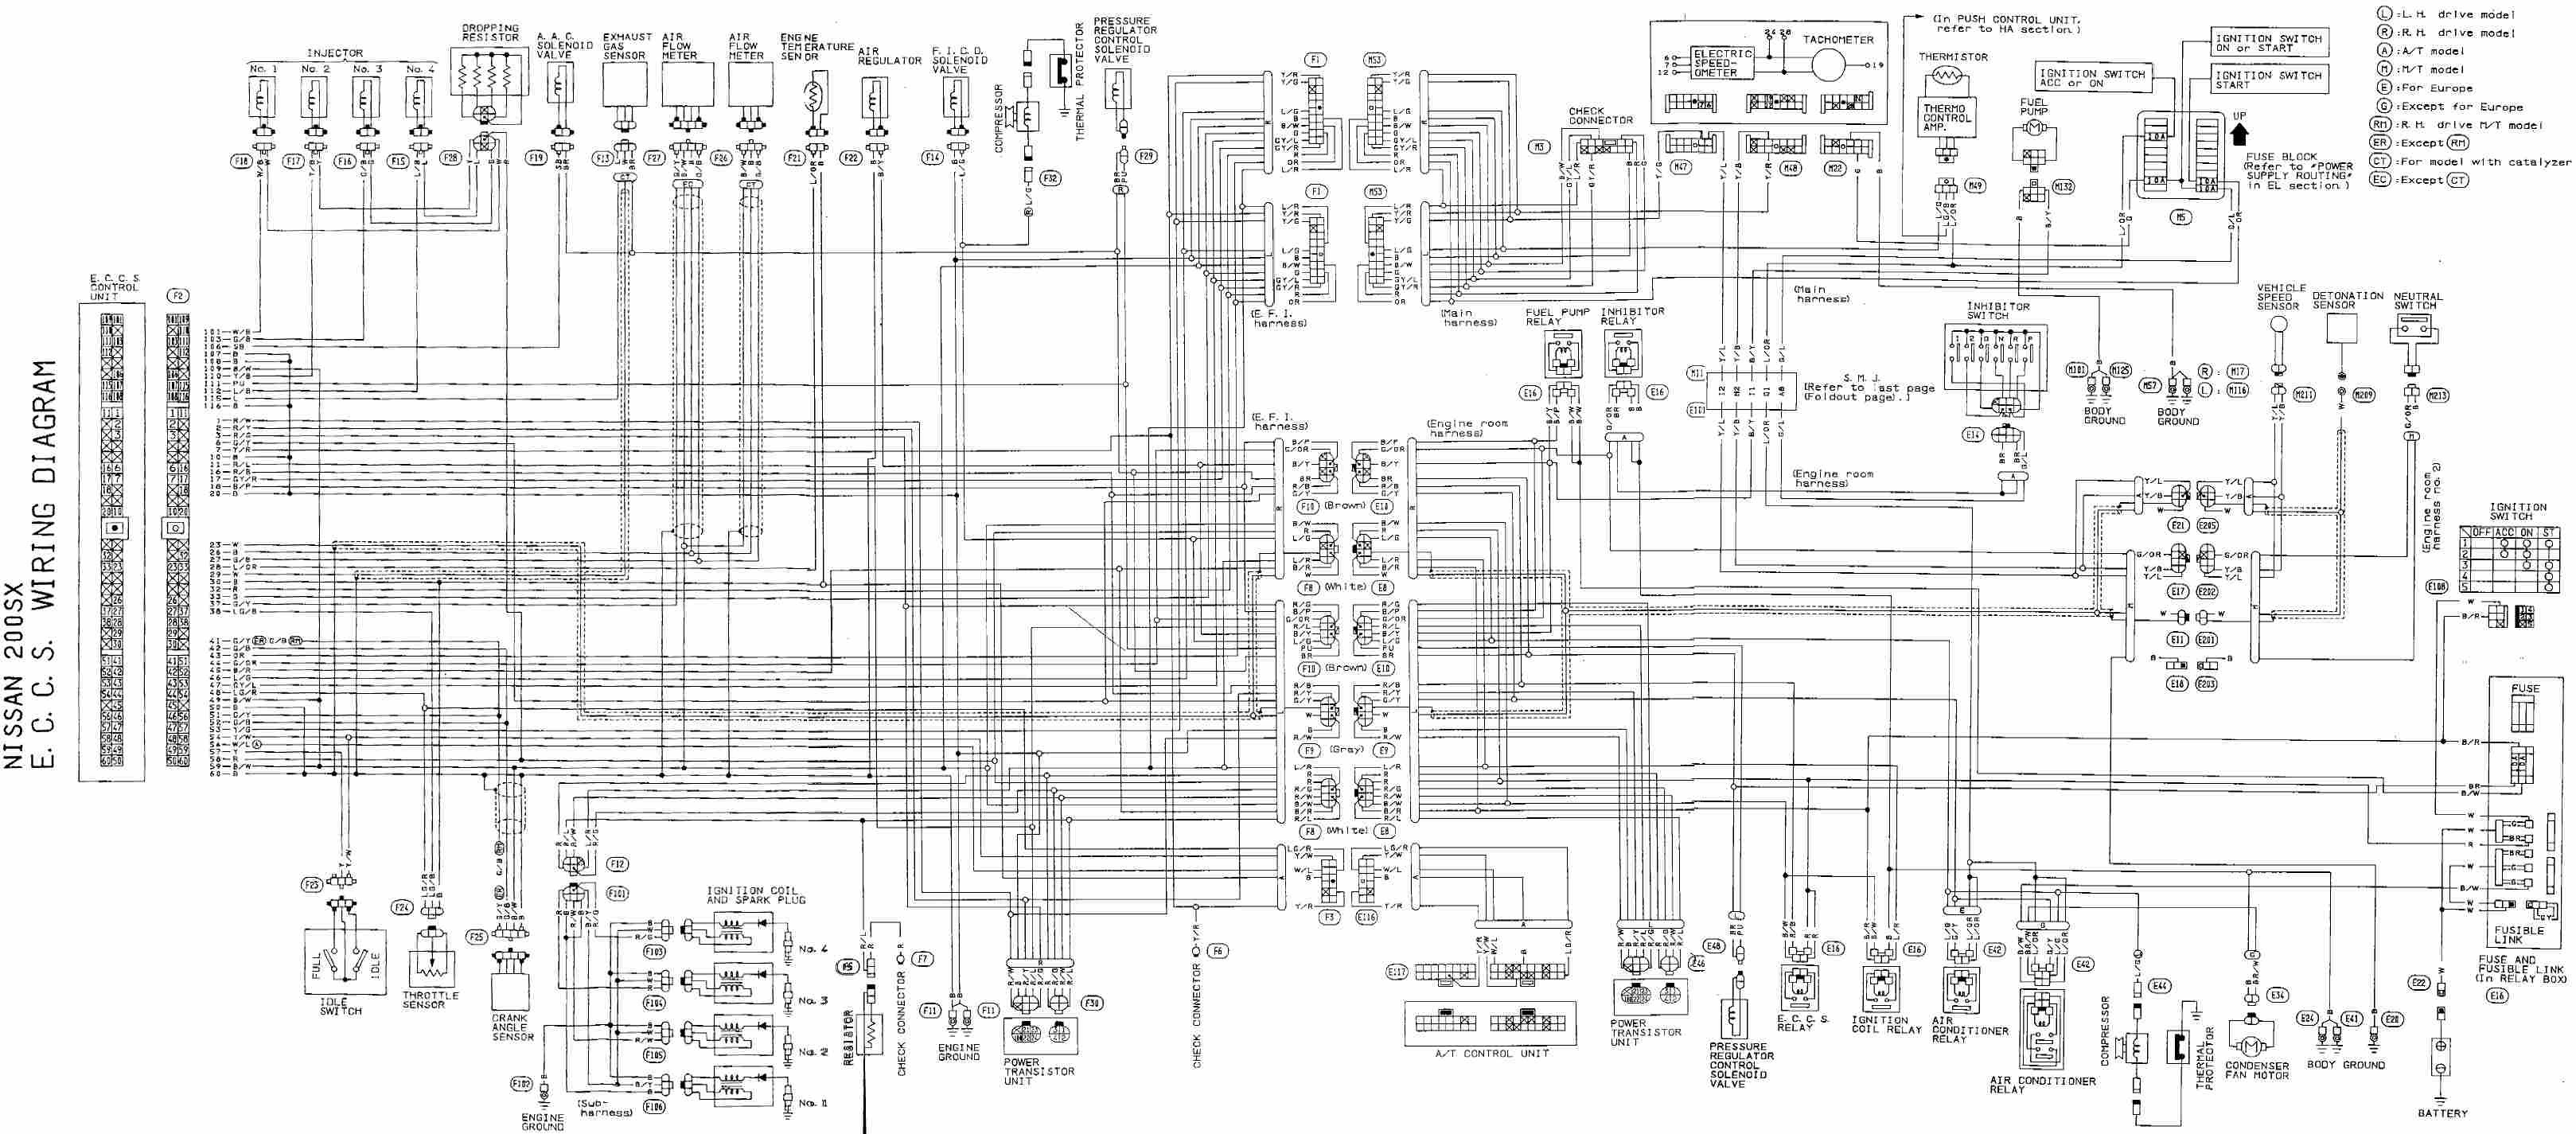 nissan micra k12 engine wiring diagram